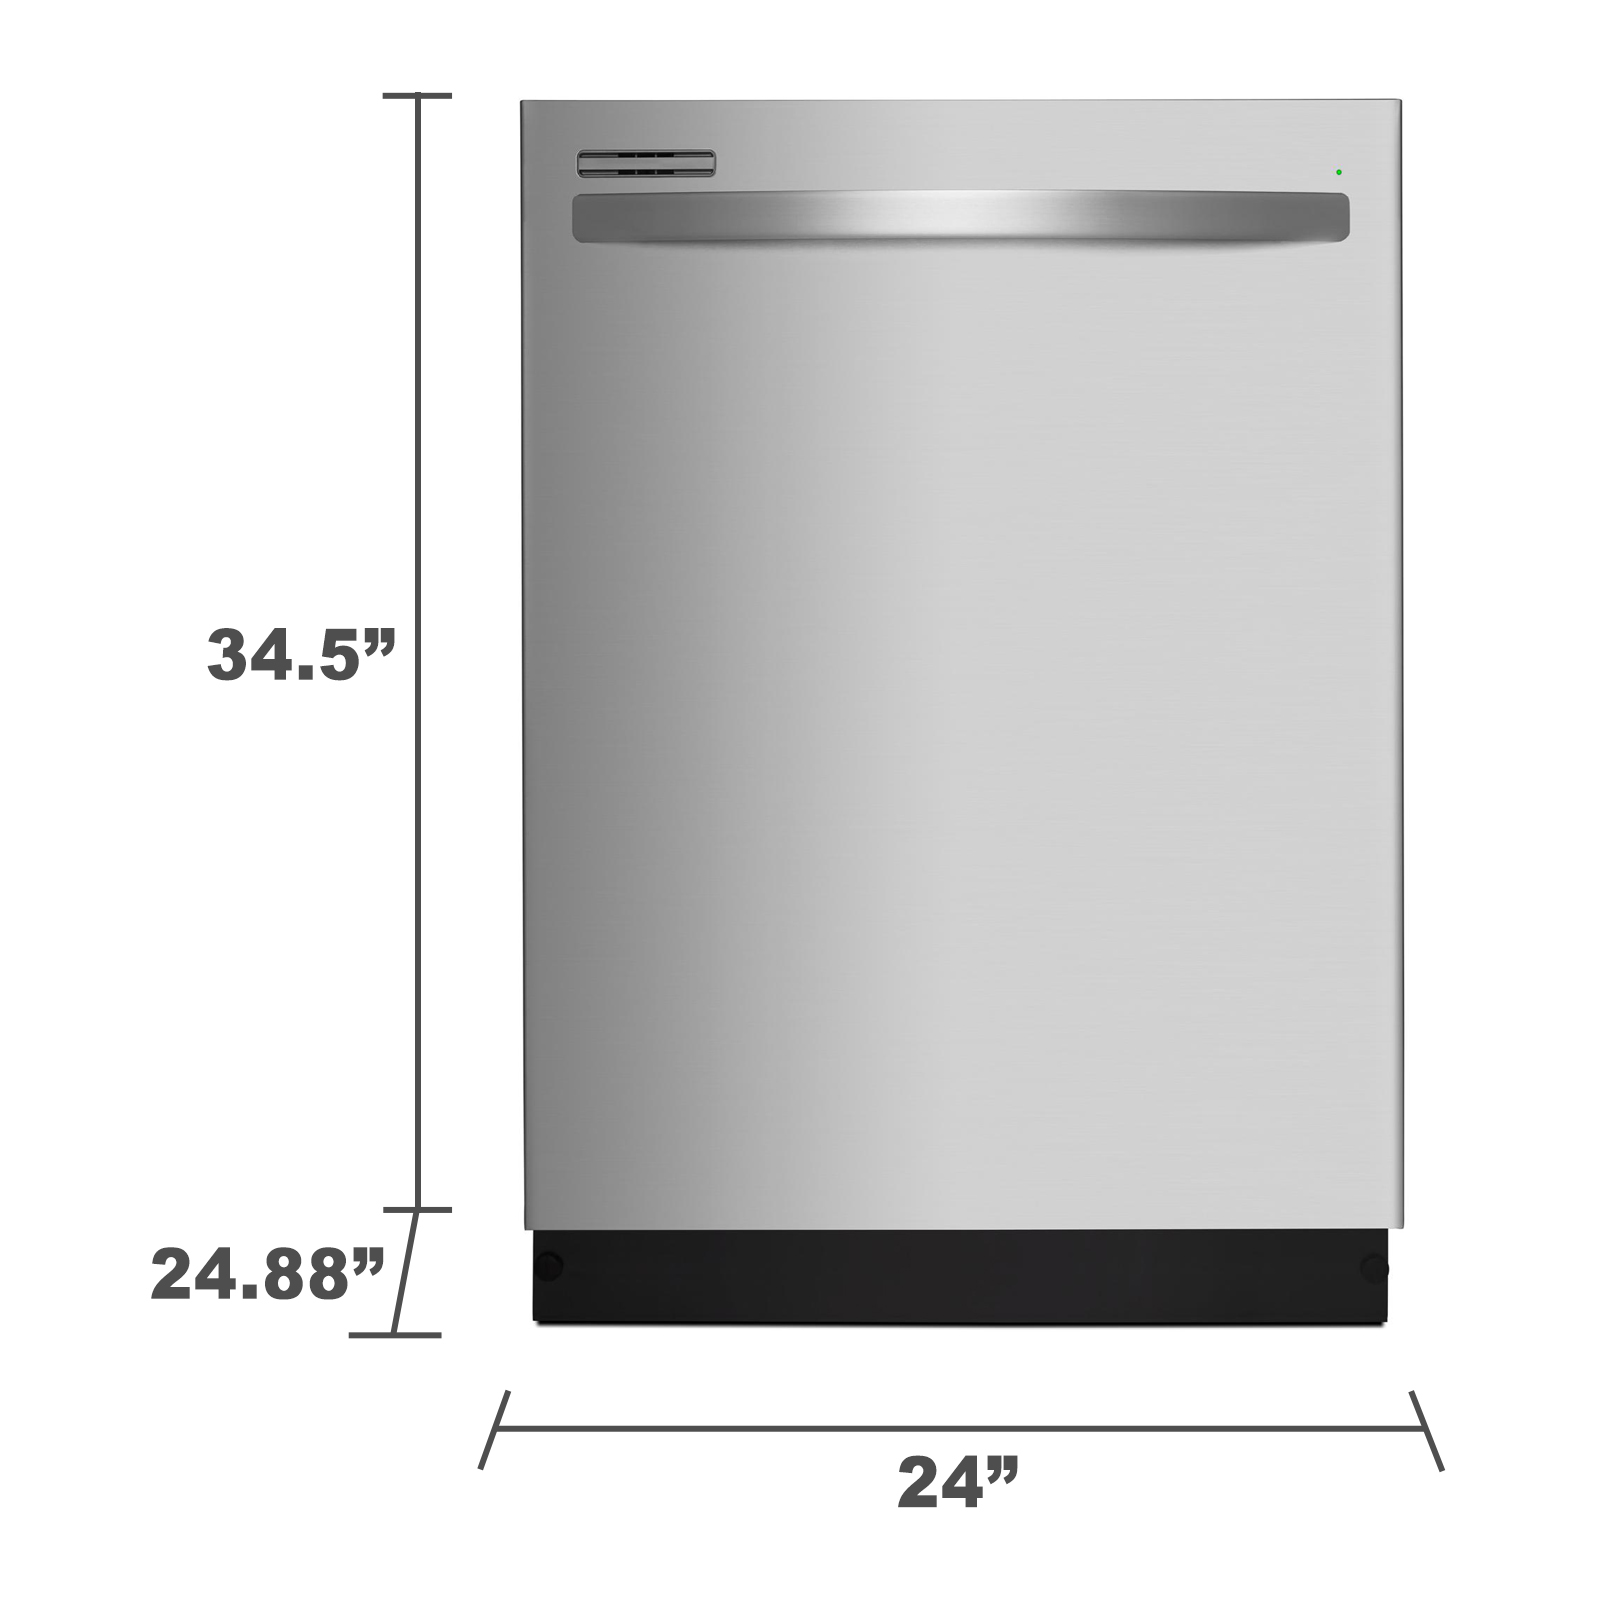 Dishwasher Dimensions Inches Dishwasher Buying Guide Tips And Recommendations